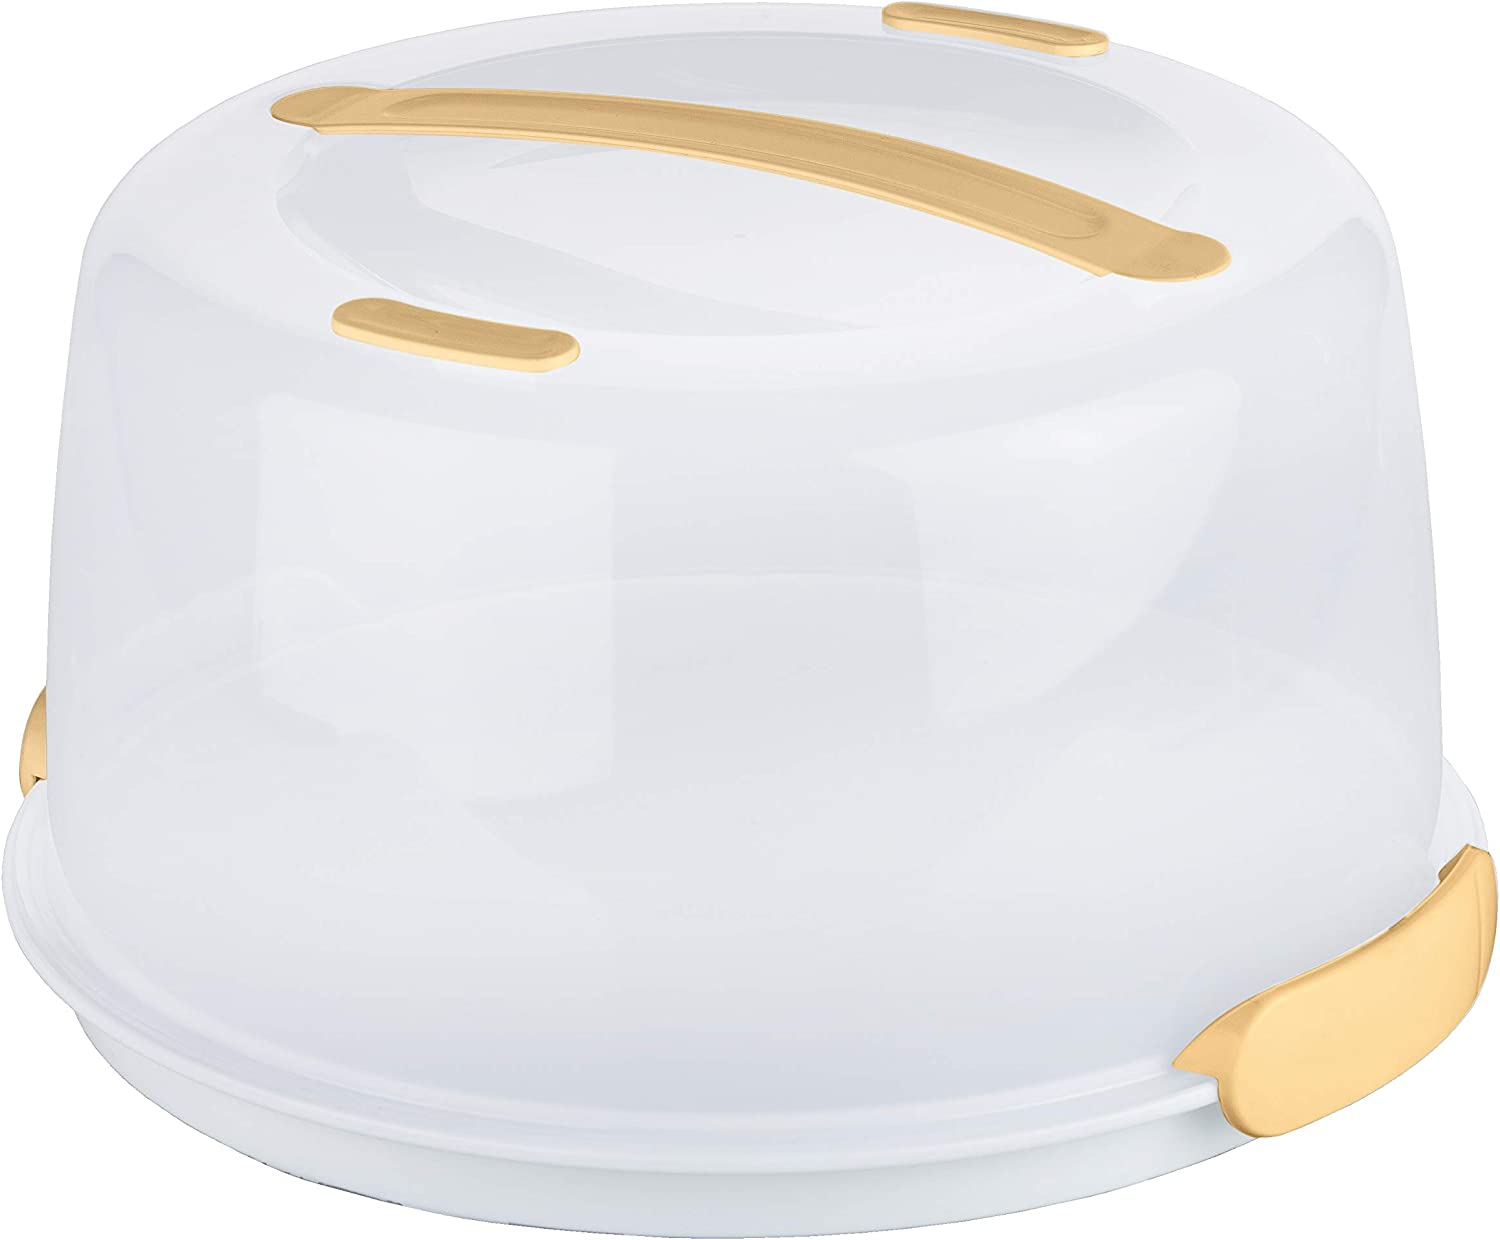 """Tescoma Cooling Tray with Lid Diam 34 cm """"Del/ícia"""" Assorted 33.7 x 32.5 x 19.1 cm"""